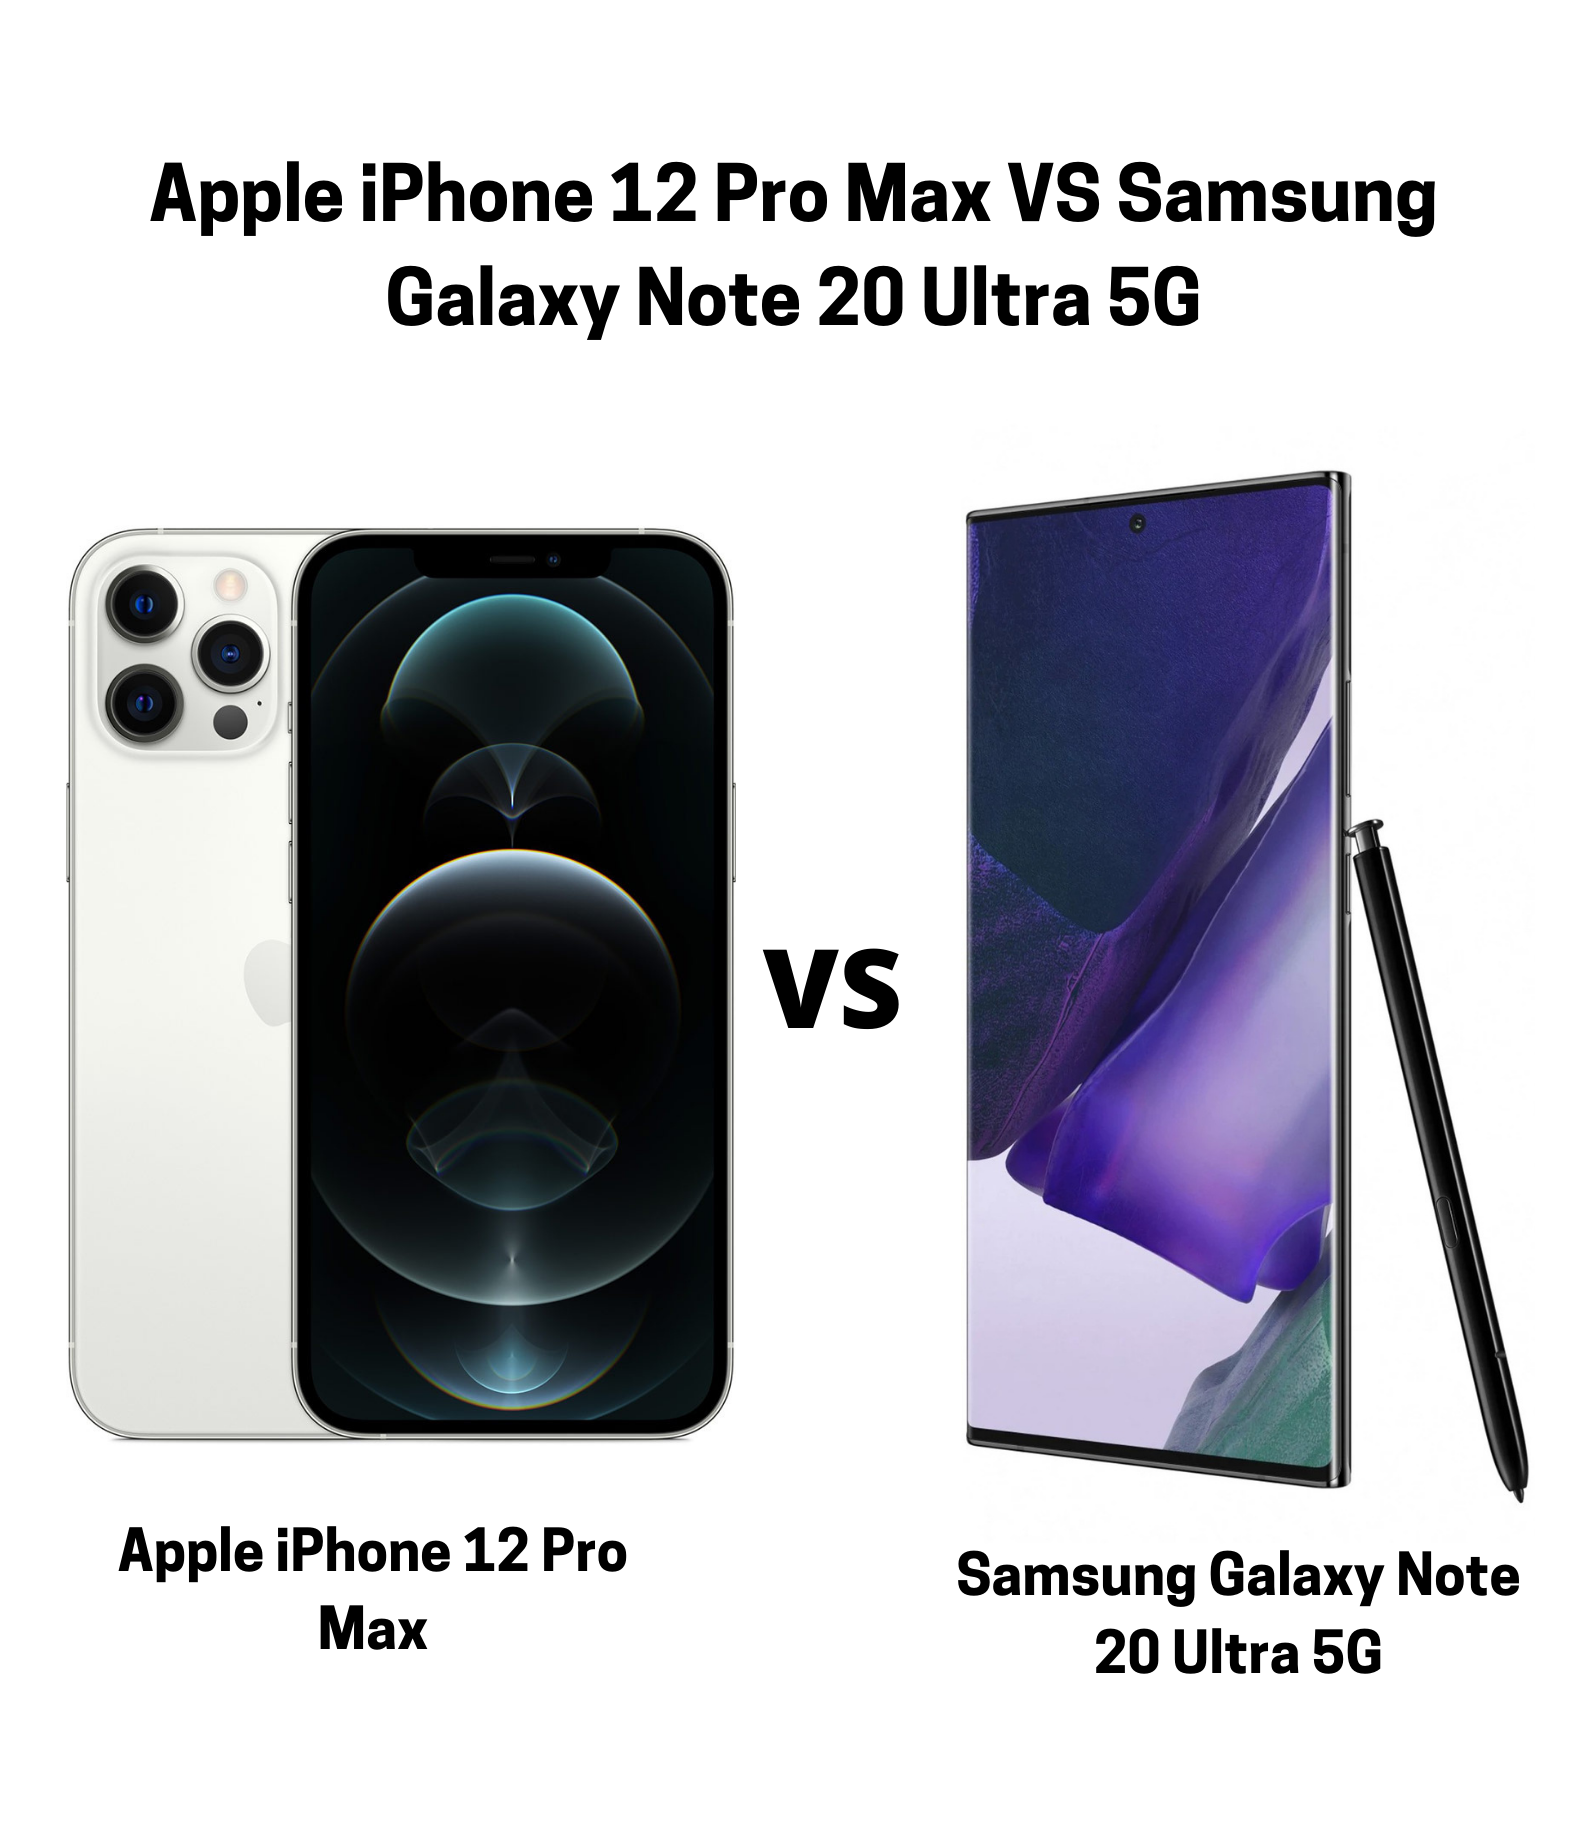 Apple iPhone 12 Pro Max VS Samsung Galaxy Note 20 Ultra 5G